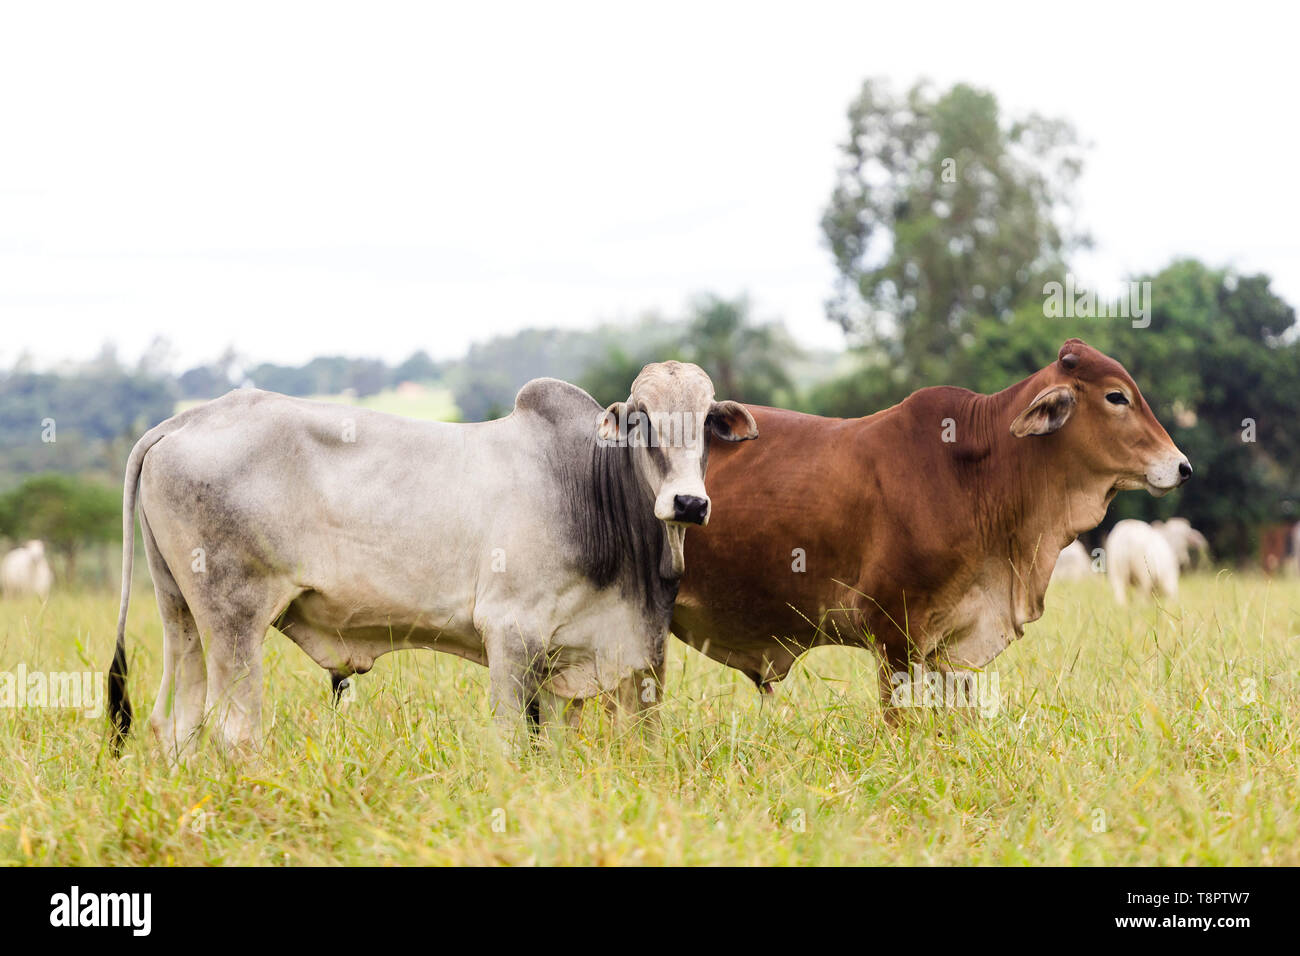 May 14, 2019 - GlóRia De Dourados, Mato Grosso do Sul, Brazil - Cattle seen on a farm in Brazil.Livestock farming has a great relevance in Brazilian exports, in addition to supplying the domestic market. It is an economic activity developed in rural areas.Agriculture in Brazil is one of the main bases of the country's economy. Agriculture is an activity that is part of the primary sector where the land is cultivated and harvested for subsistence, export or trade. Credit: Rafael Henrique/SOPA Images/ZUMA Wire/Alamy Live News Stock Photo